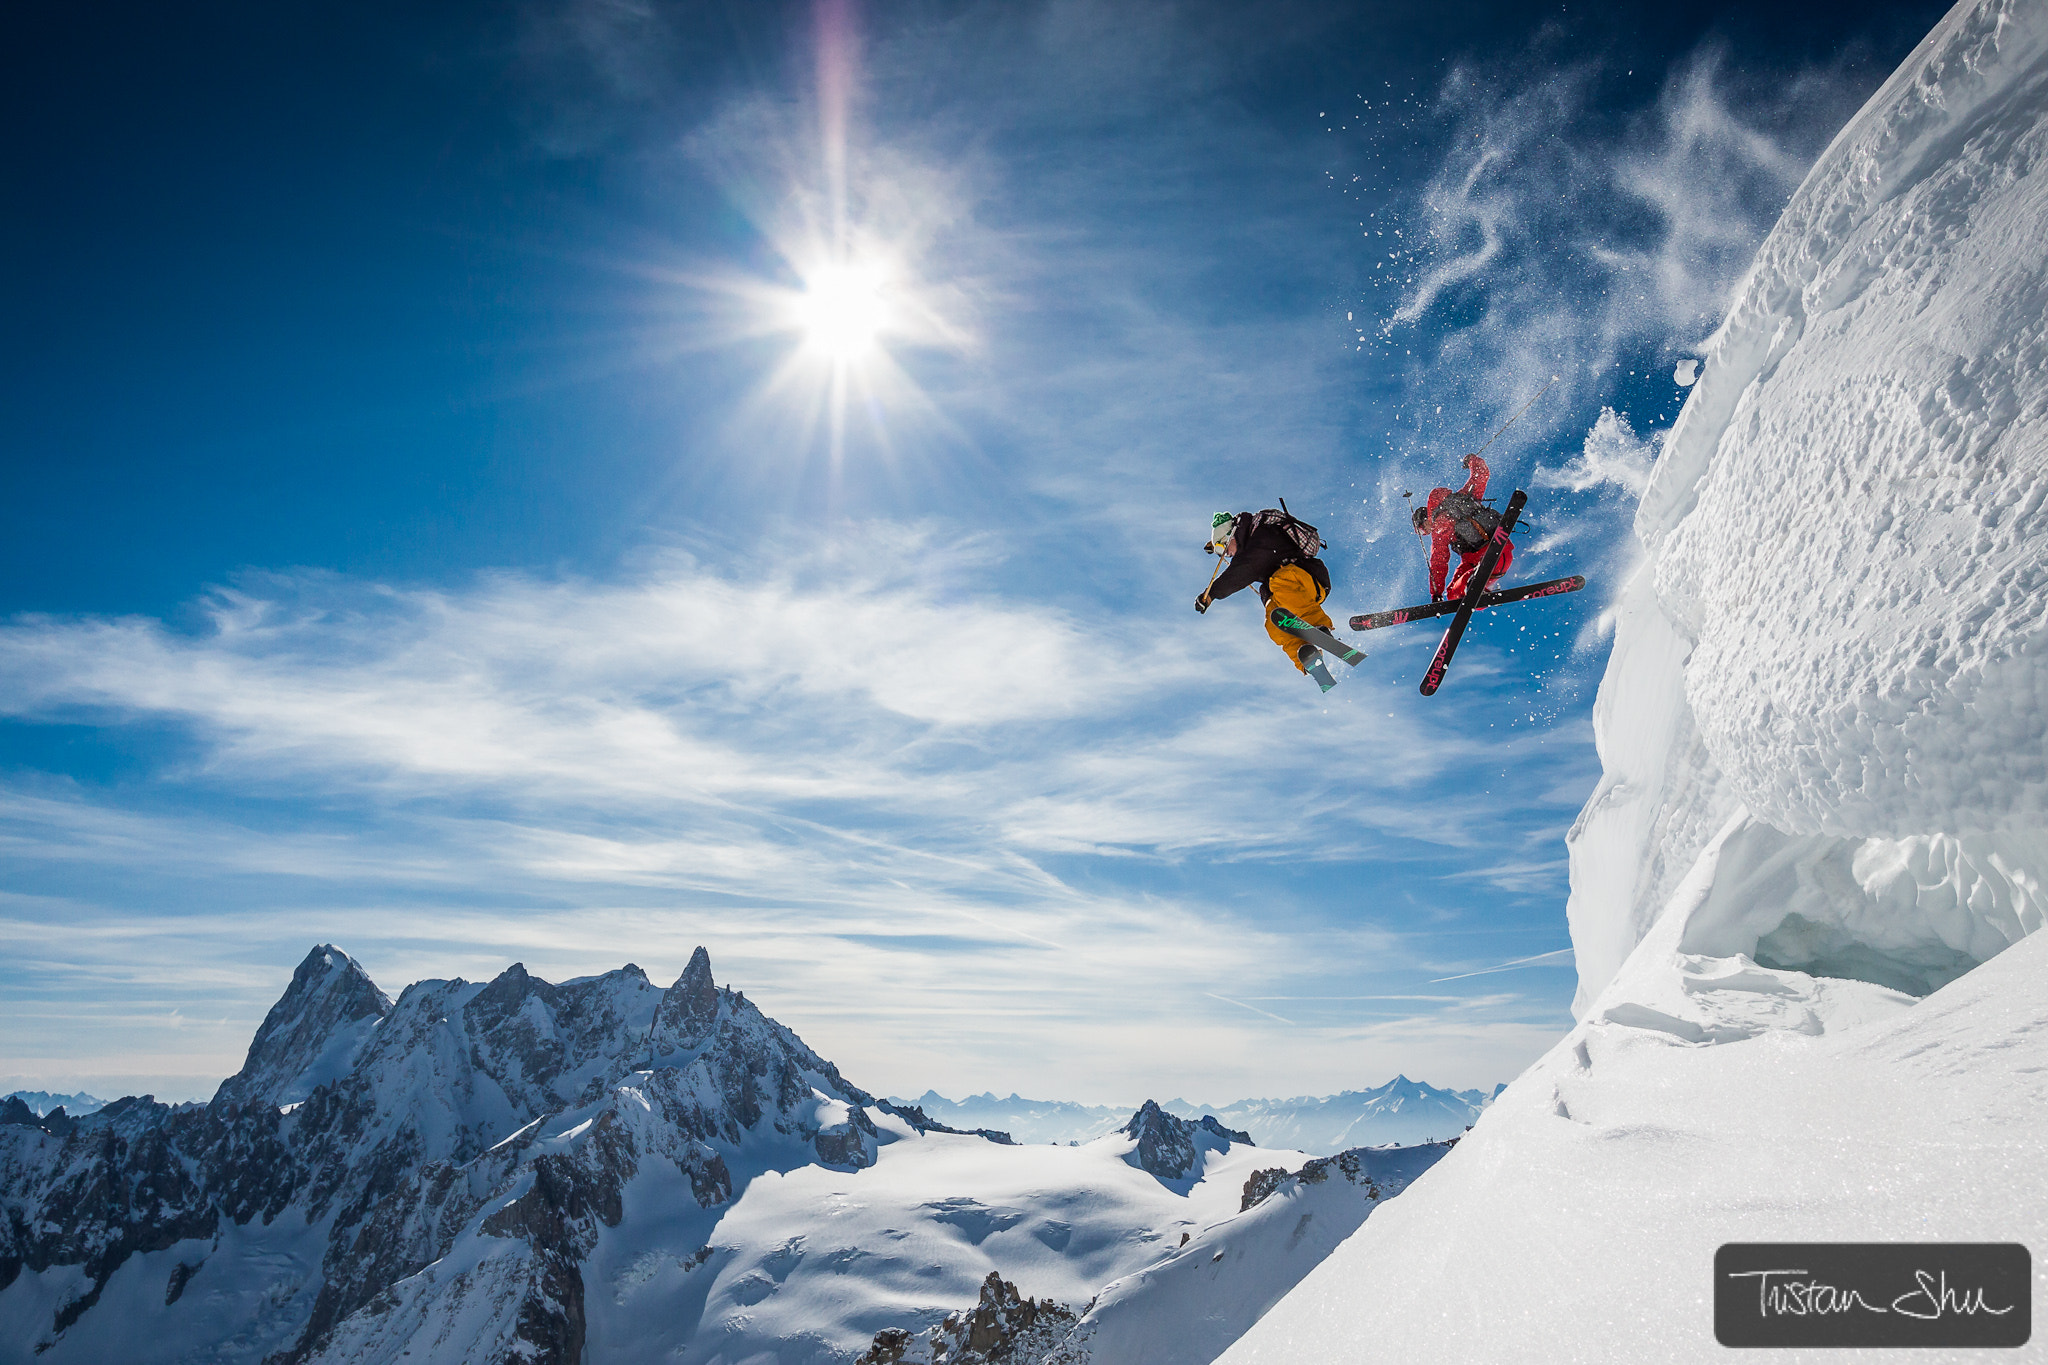 Photograph Jumping Legends with Candide Thovex & Guerlain Chicherit by Tristan Shu on 500px